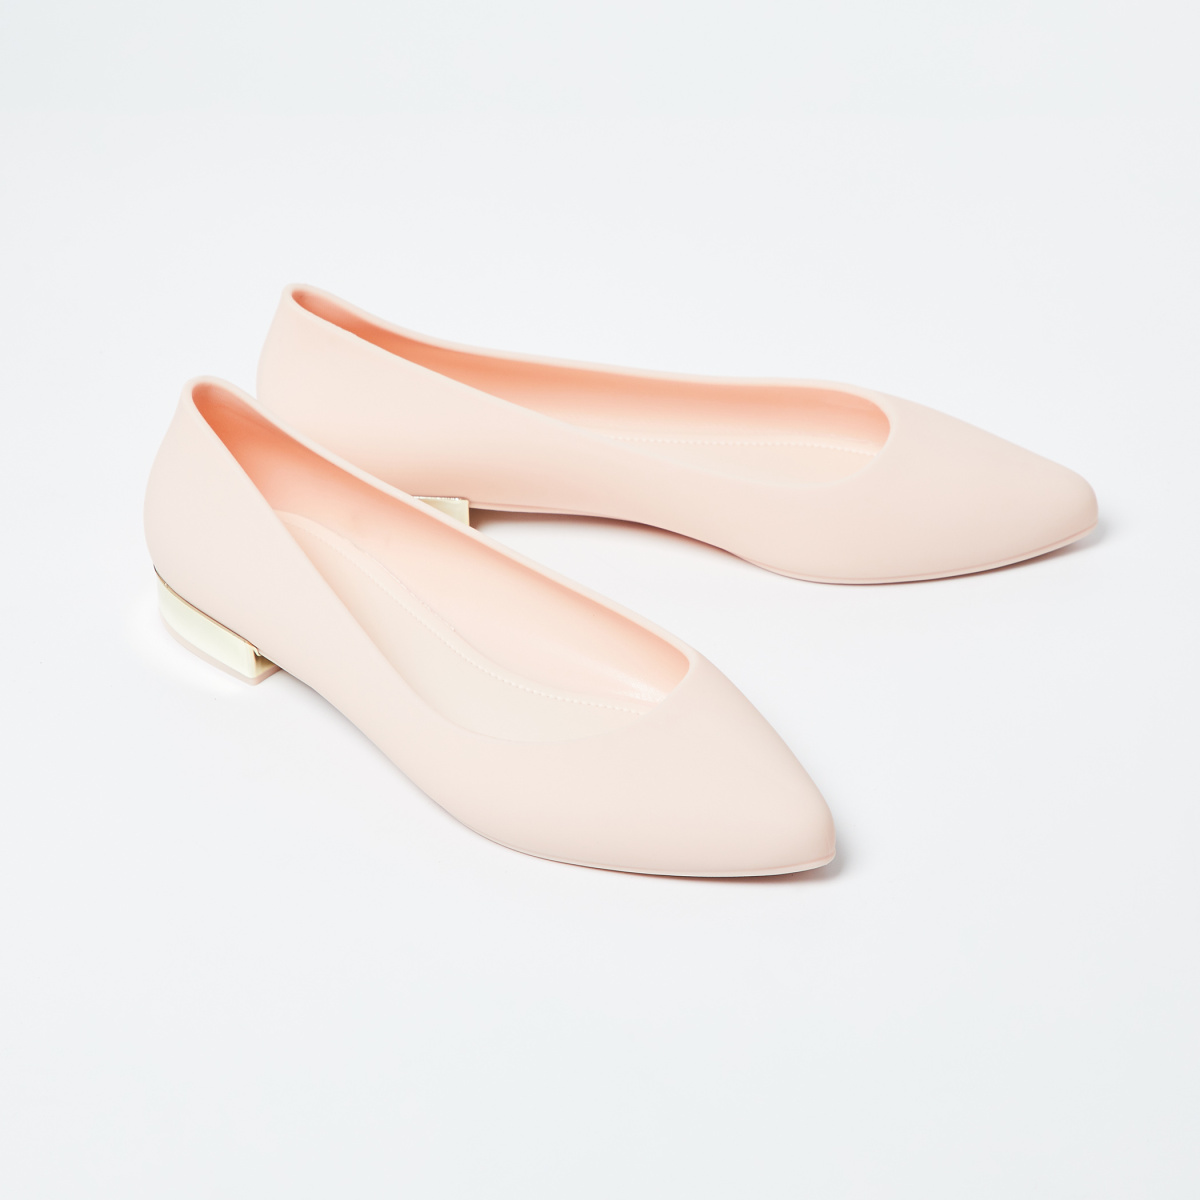 GINGER Solid Pointed-Toe Ballerinas